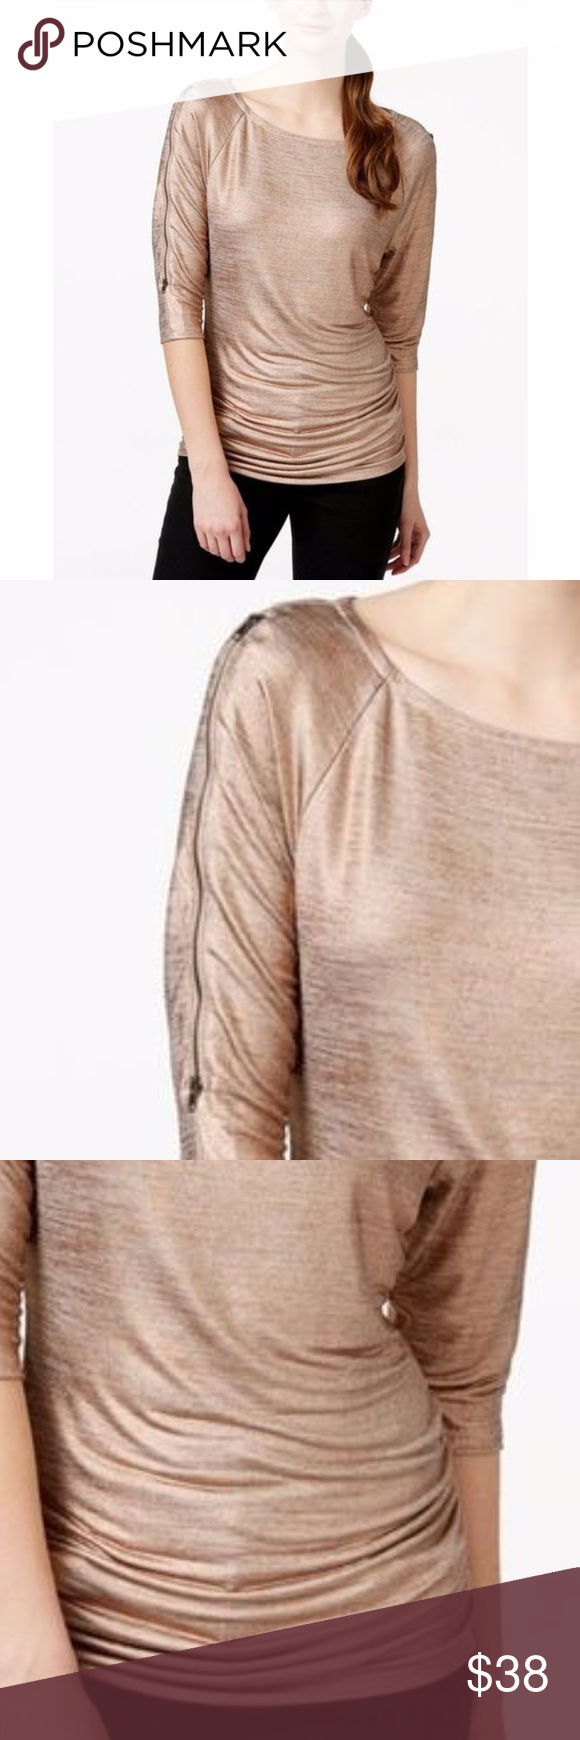 479f9fb15a7388 INC ROSE GOLD SHIMMER TOP SEXY FLATTERING NWOT GREAT TOP THAT I PURCHASED  AND NEVER GOT